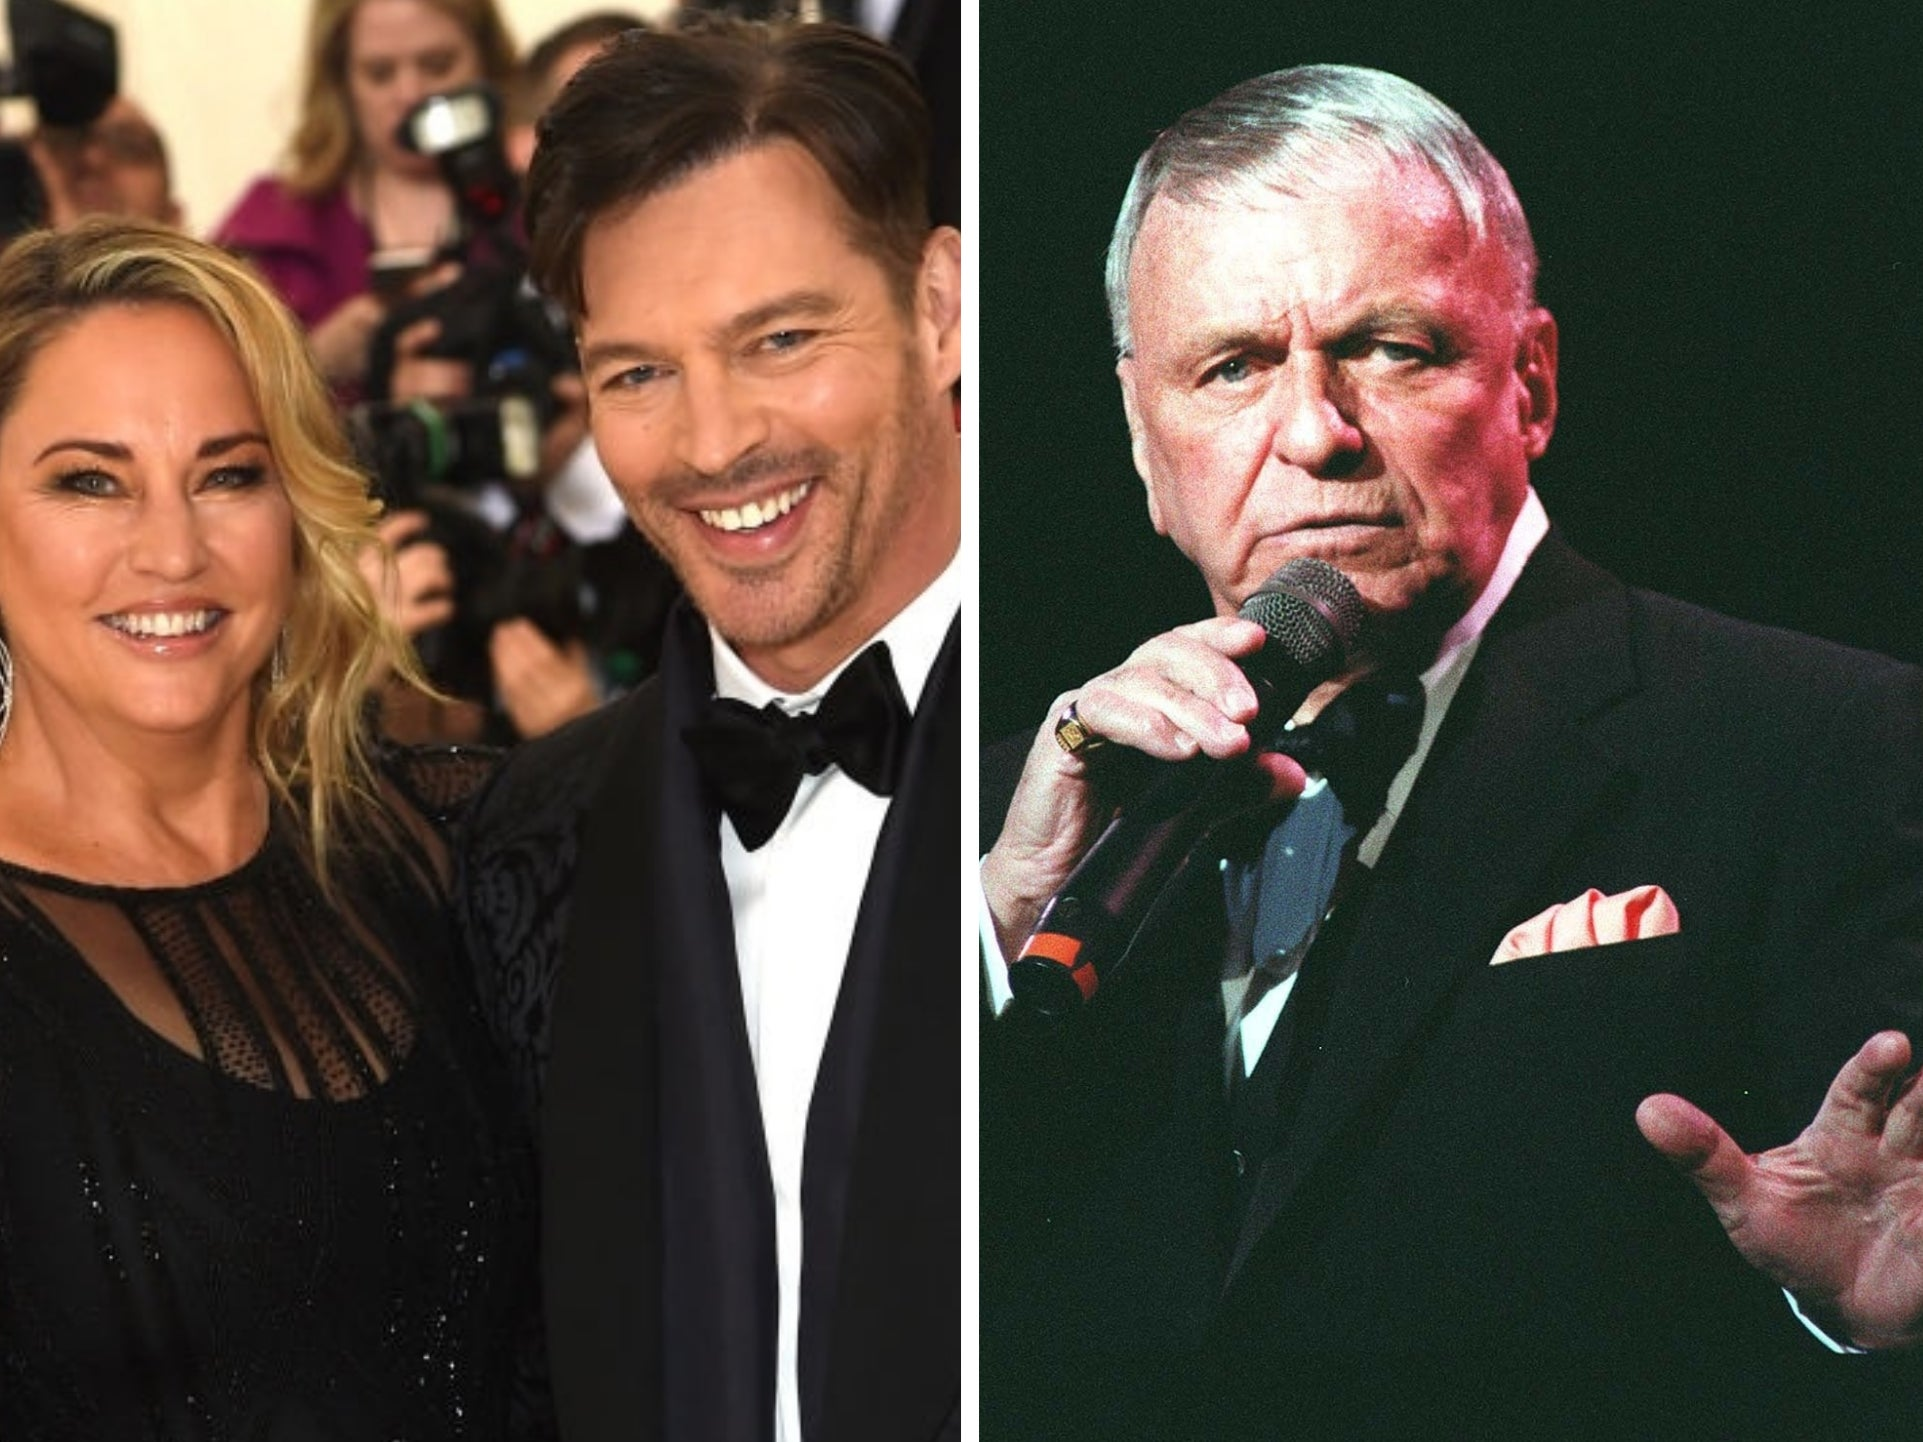 Harry Connick Jr claims Frank Sinatra was 'completely inappropriate' with his wife